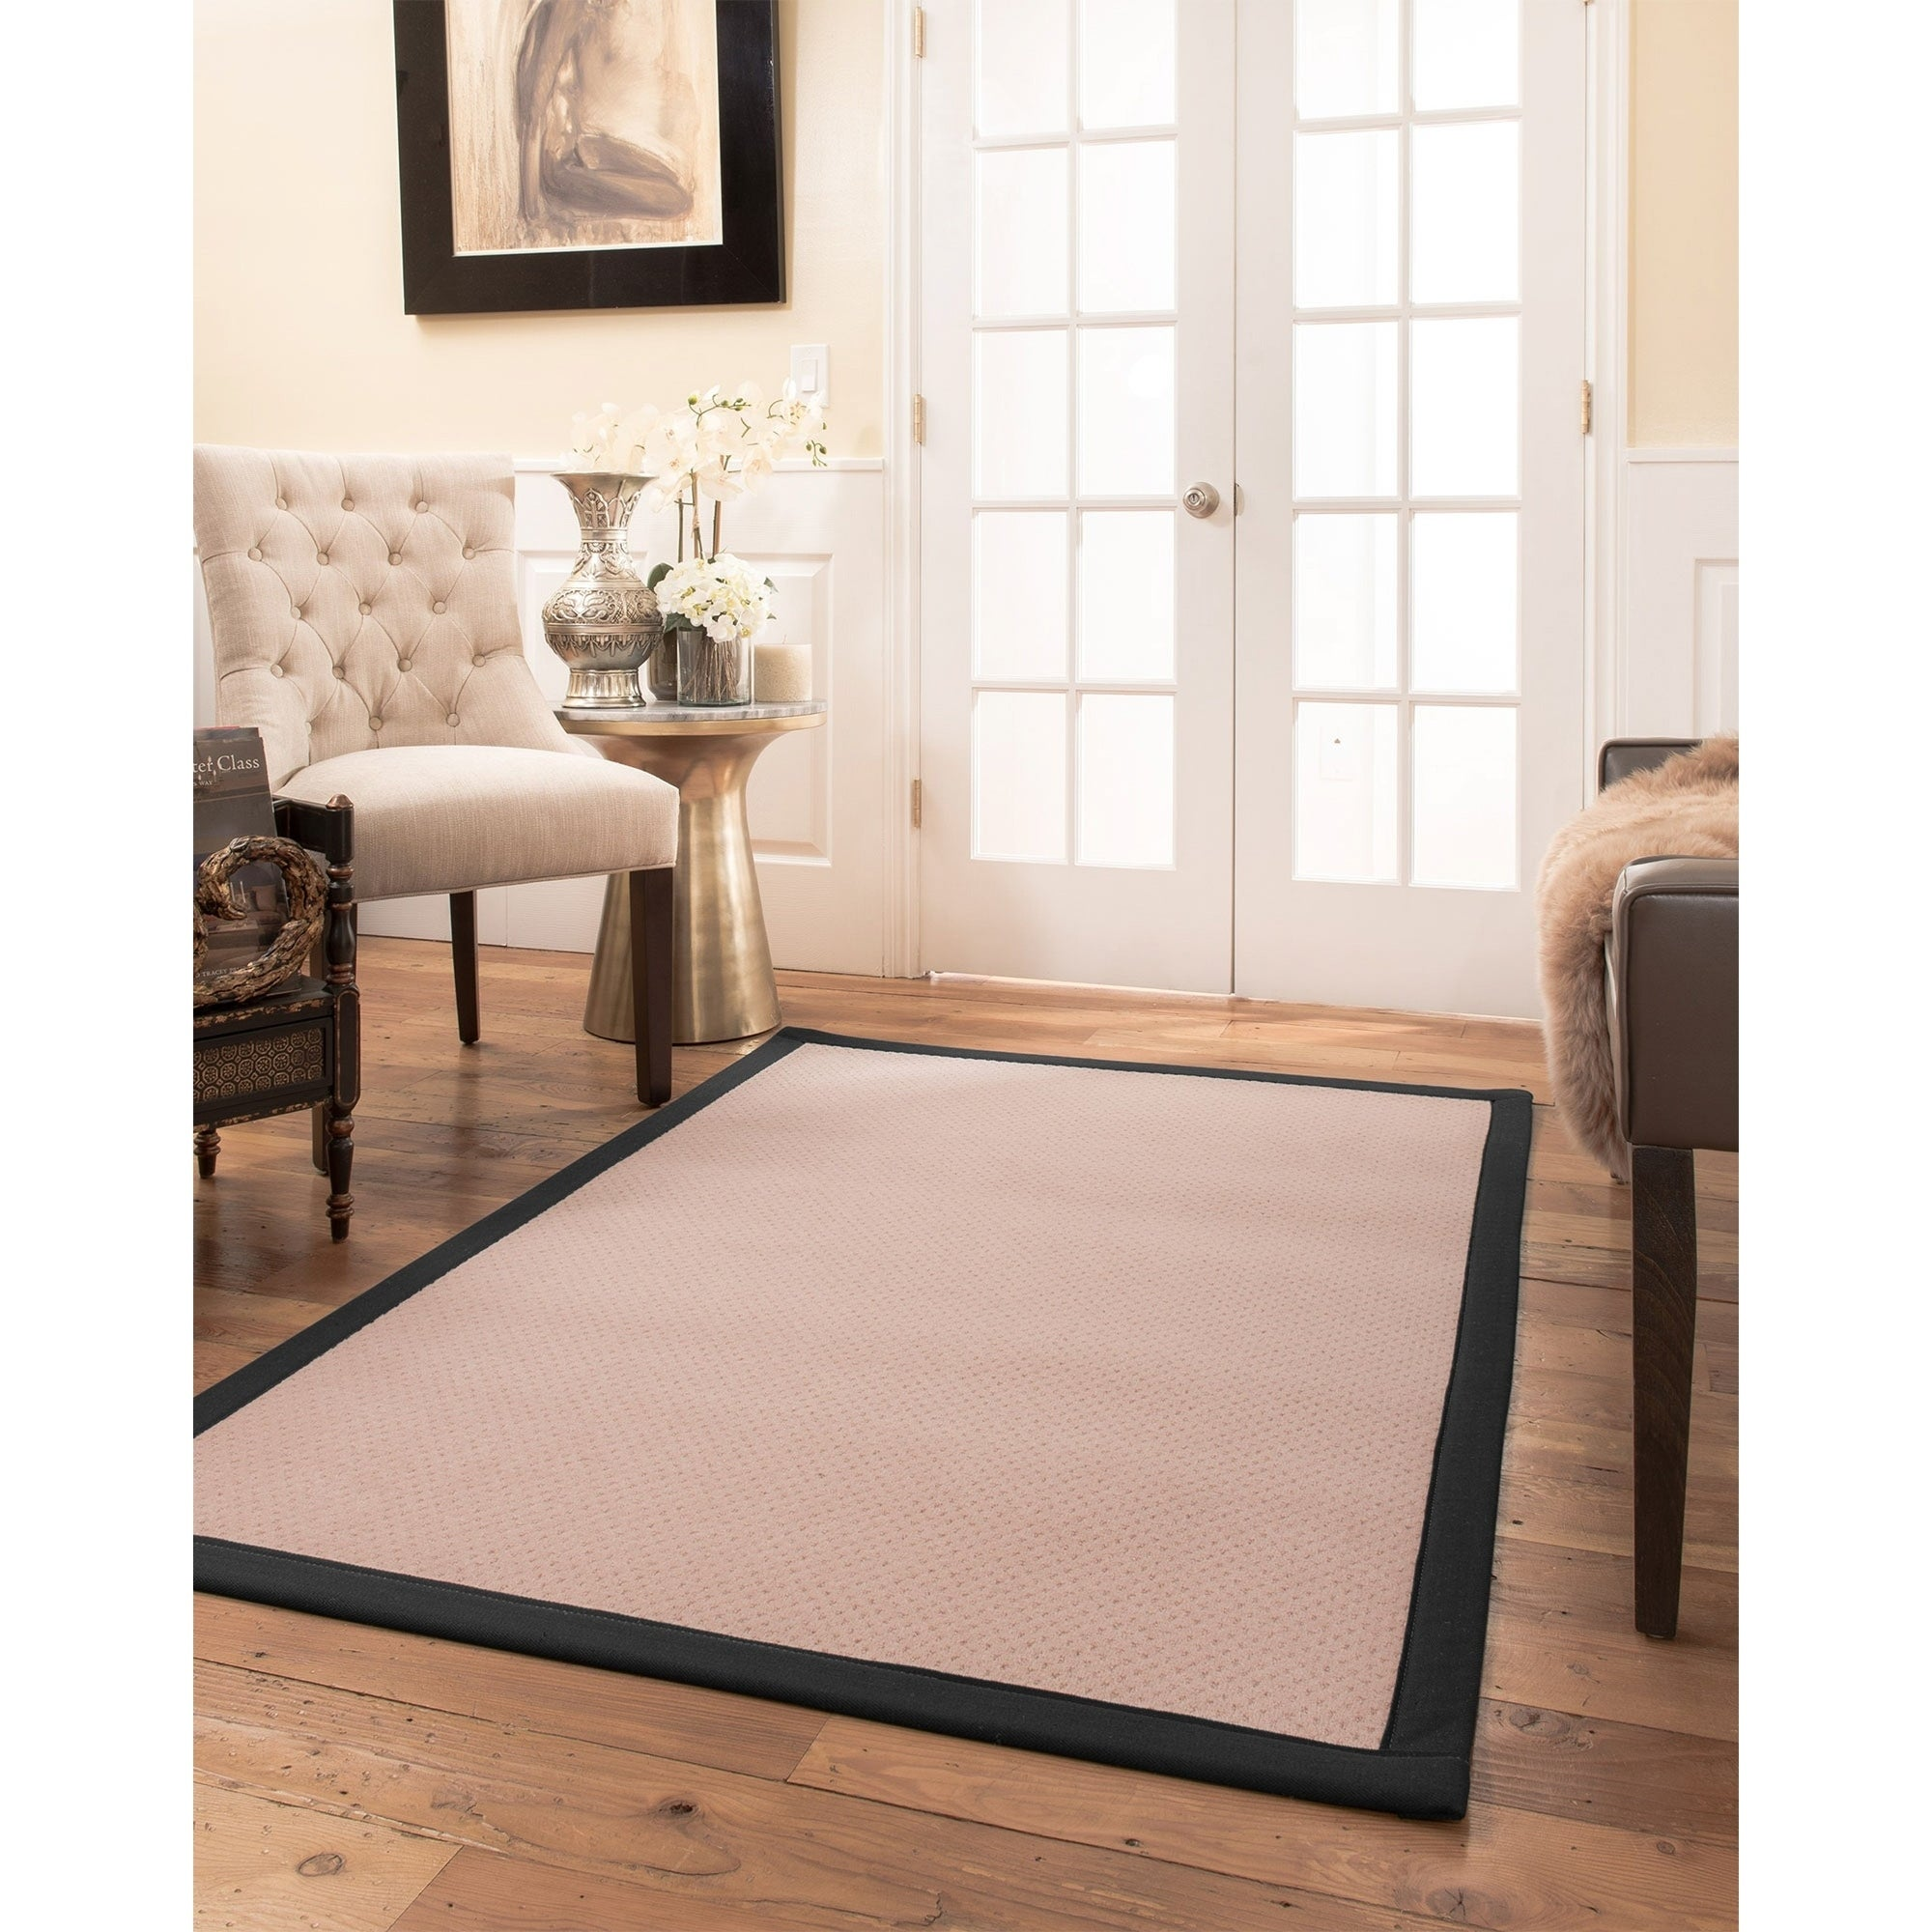 100 Naturalarearug Eloise Area Rug Natural Wool Hand Crafted Black Wide Canvas Border 5 X 8 Free Shipping Today